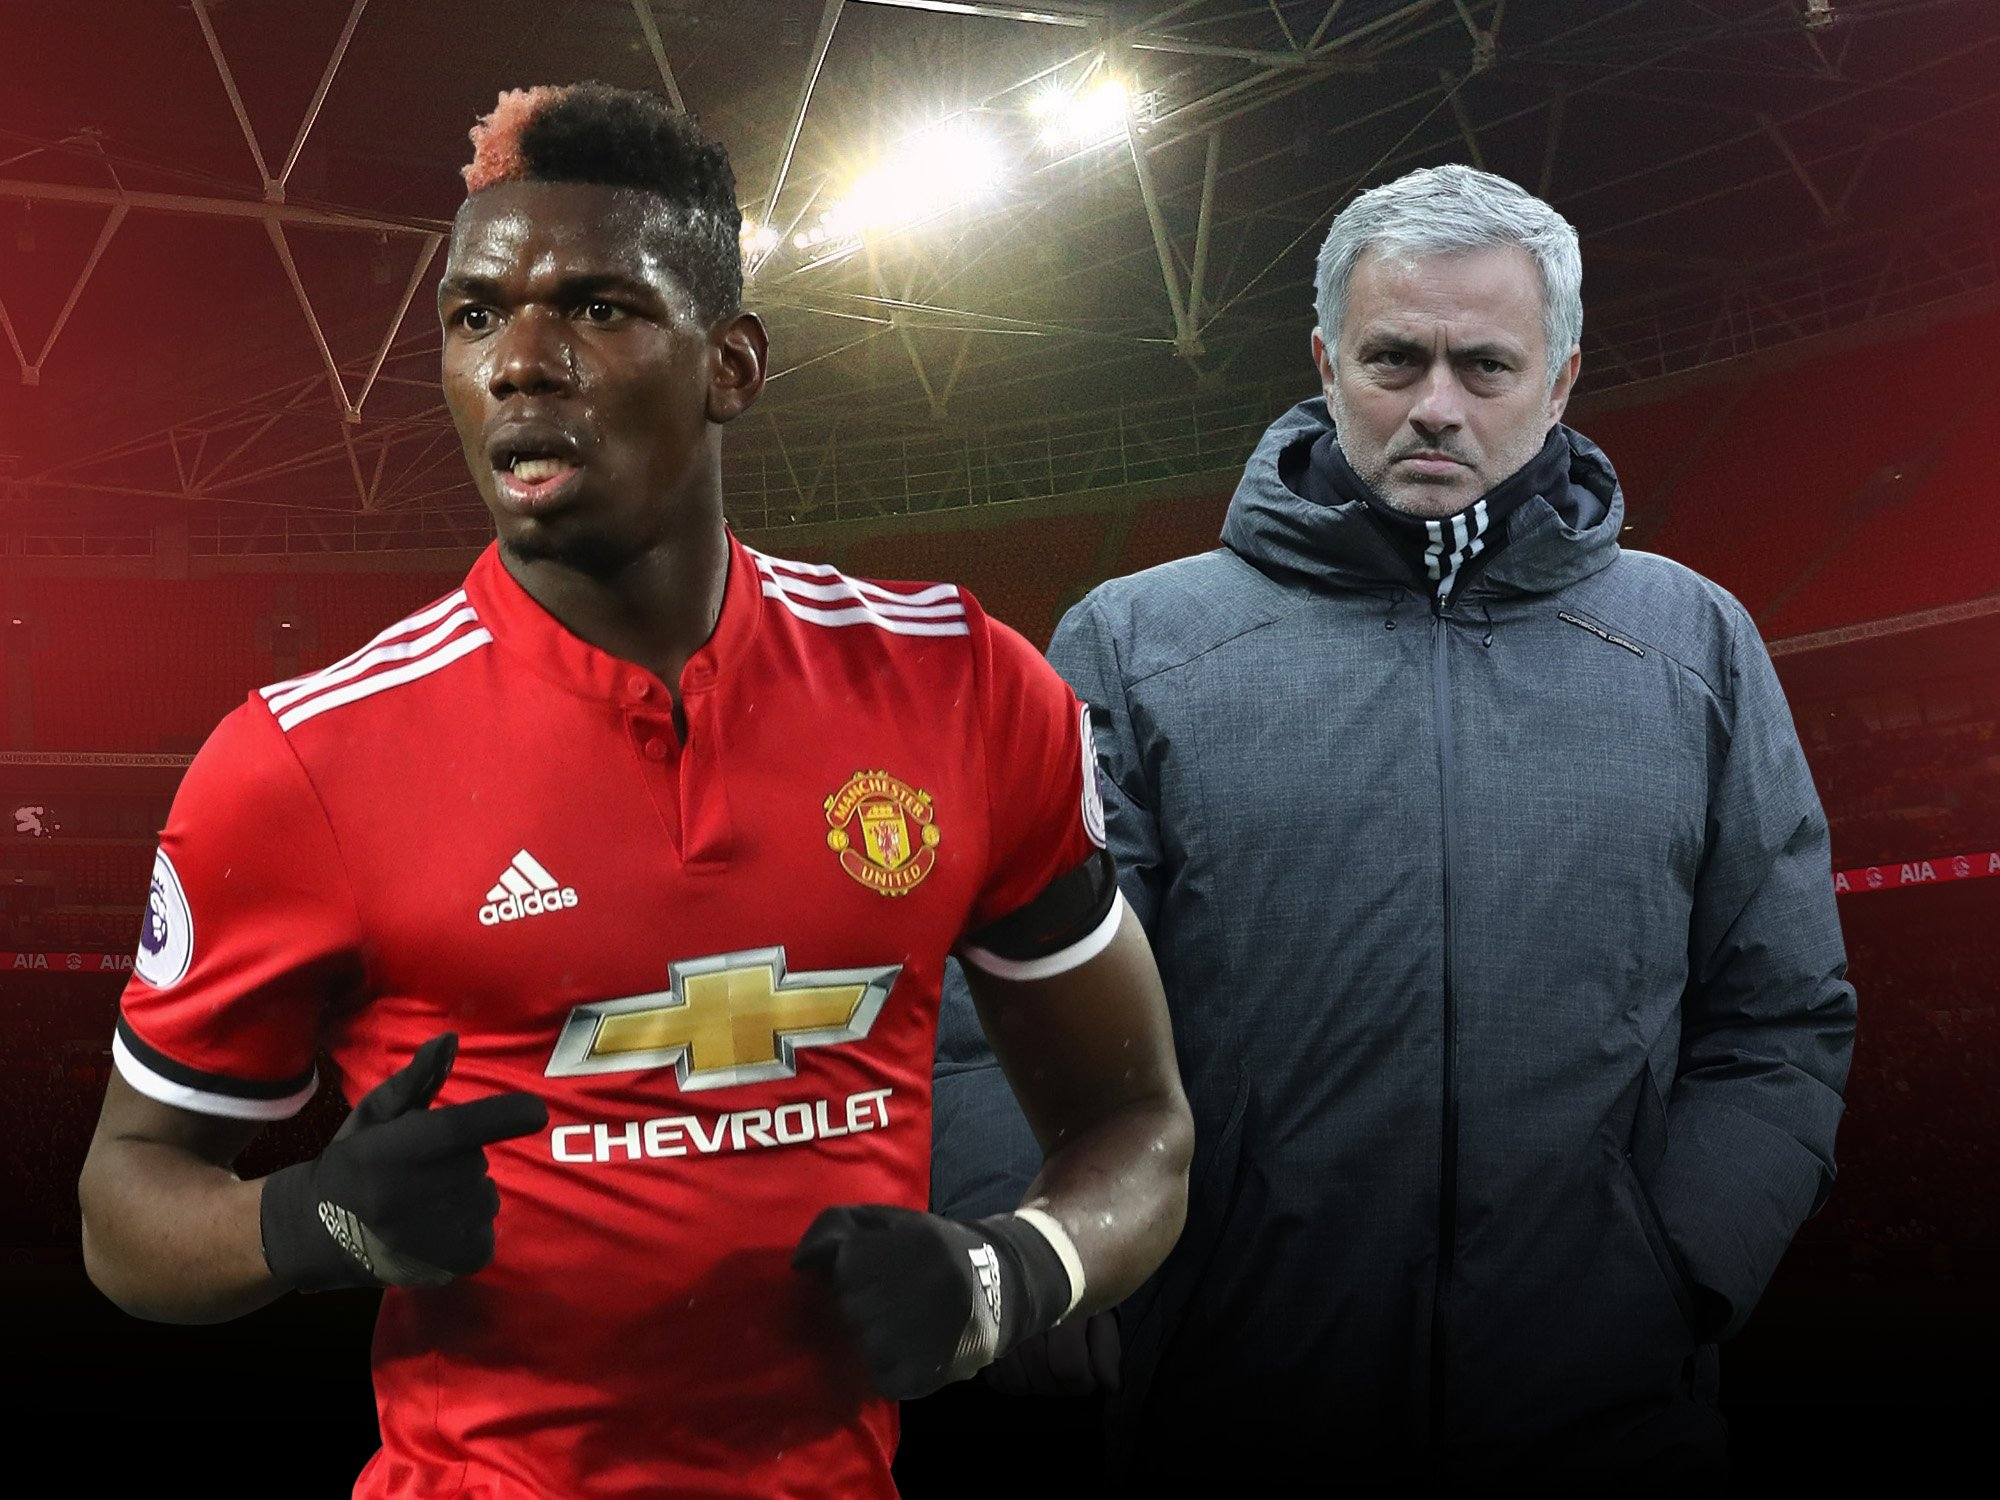 Jose Mourinho's Paul Pogba gamble is the biggest risk of his Manchester United tenure